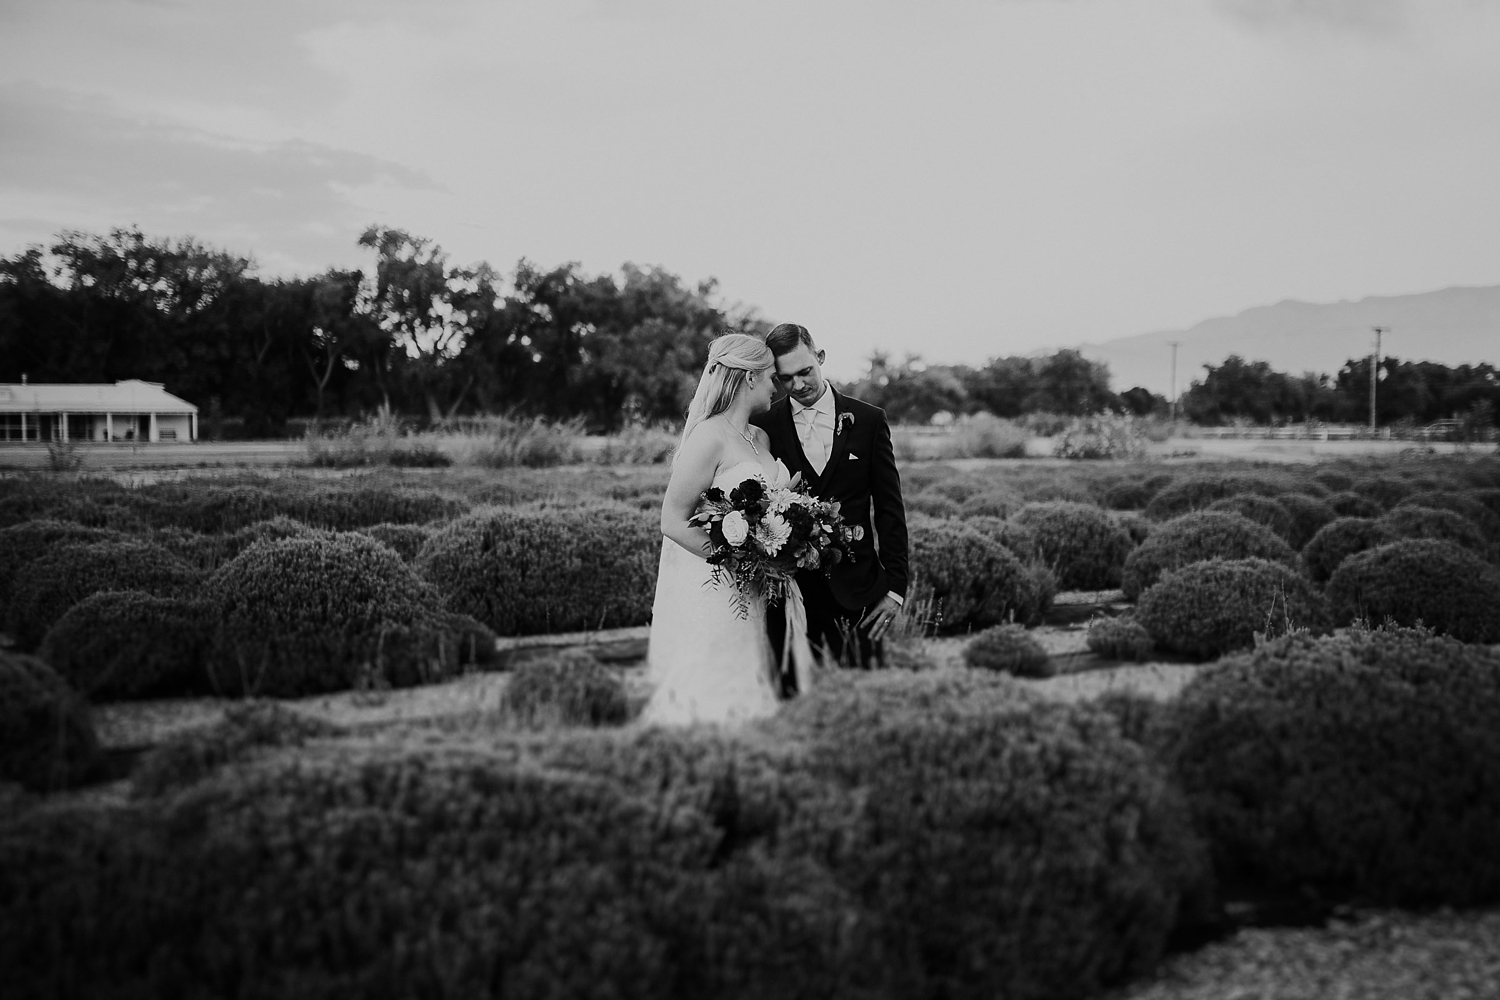 Alicia+lucia+photography+-+albuquerque+wedding+photographer+-+santa+fe+wedding+photography+-+new+mexico+wedding+photographer+-+los+poblanos+wedding+-+los+poblanos+fall+wedding_0071.jpg